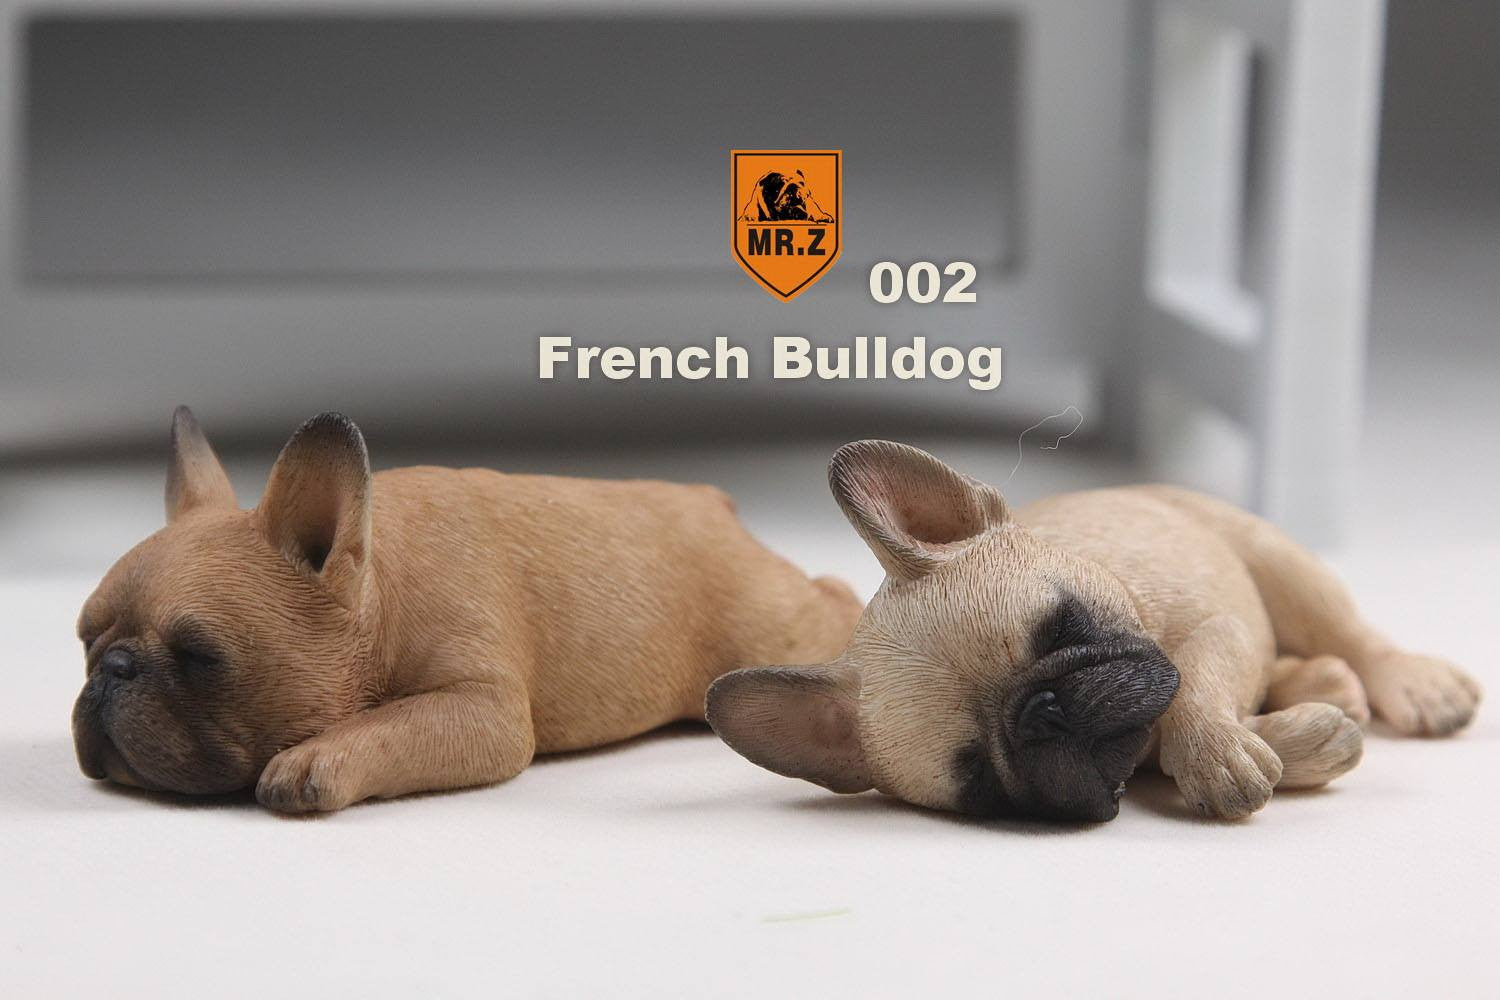 MR.Z - Real Animal Series No.9 - 1/6th Scale French Bulldog (Sleep Mode) 001-005 - Marvelous Toys - 11